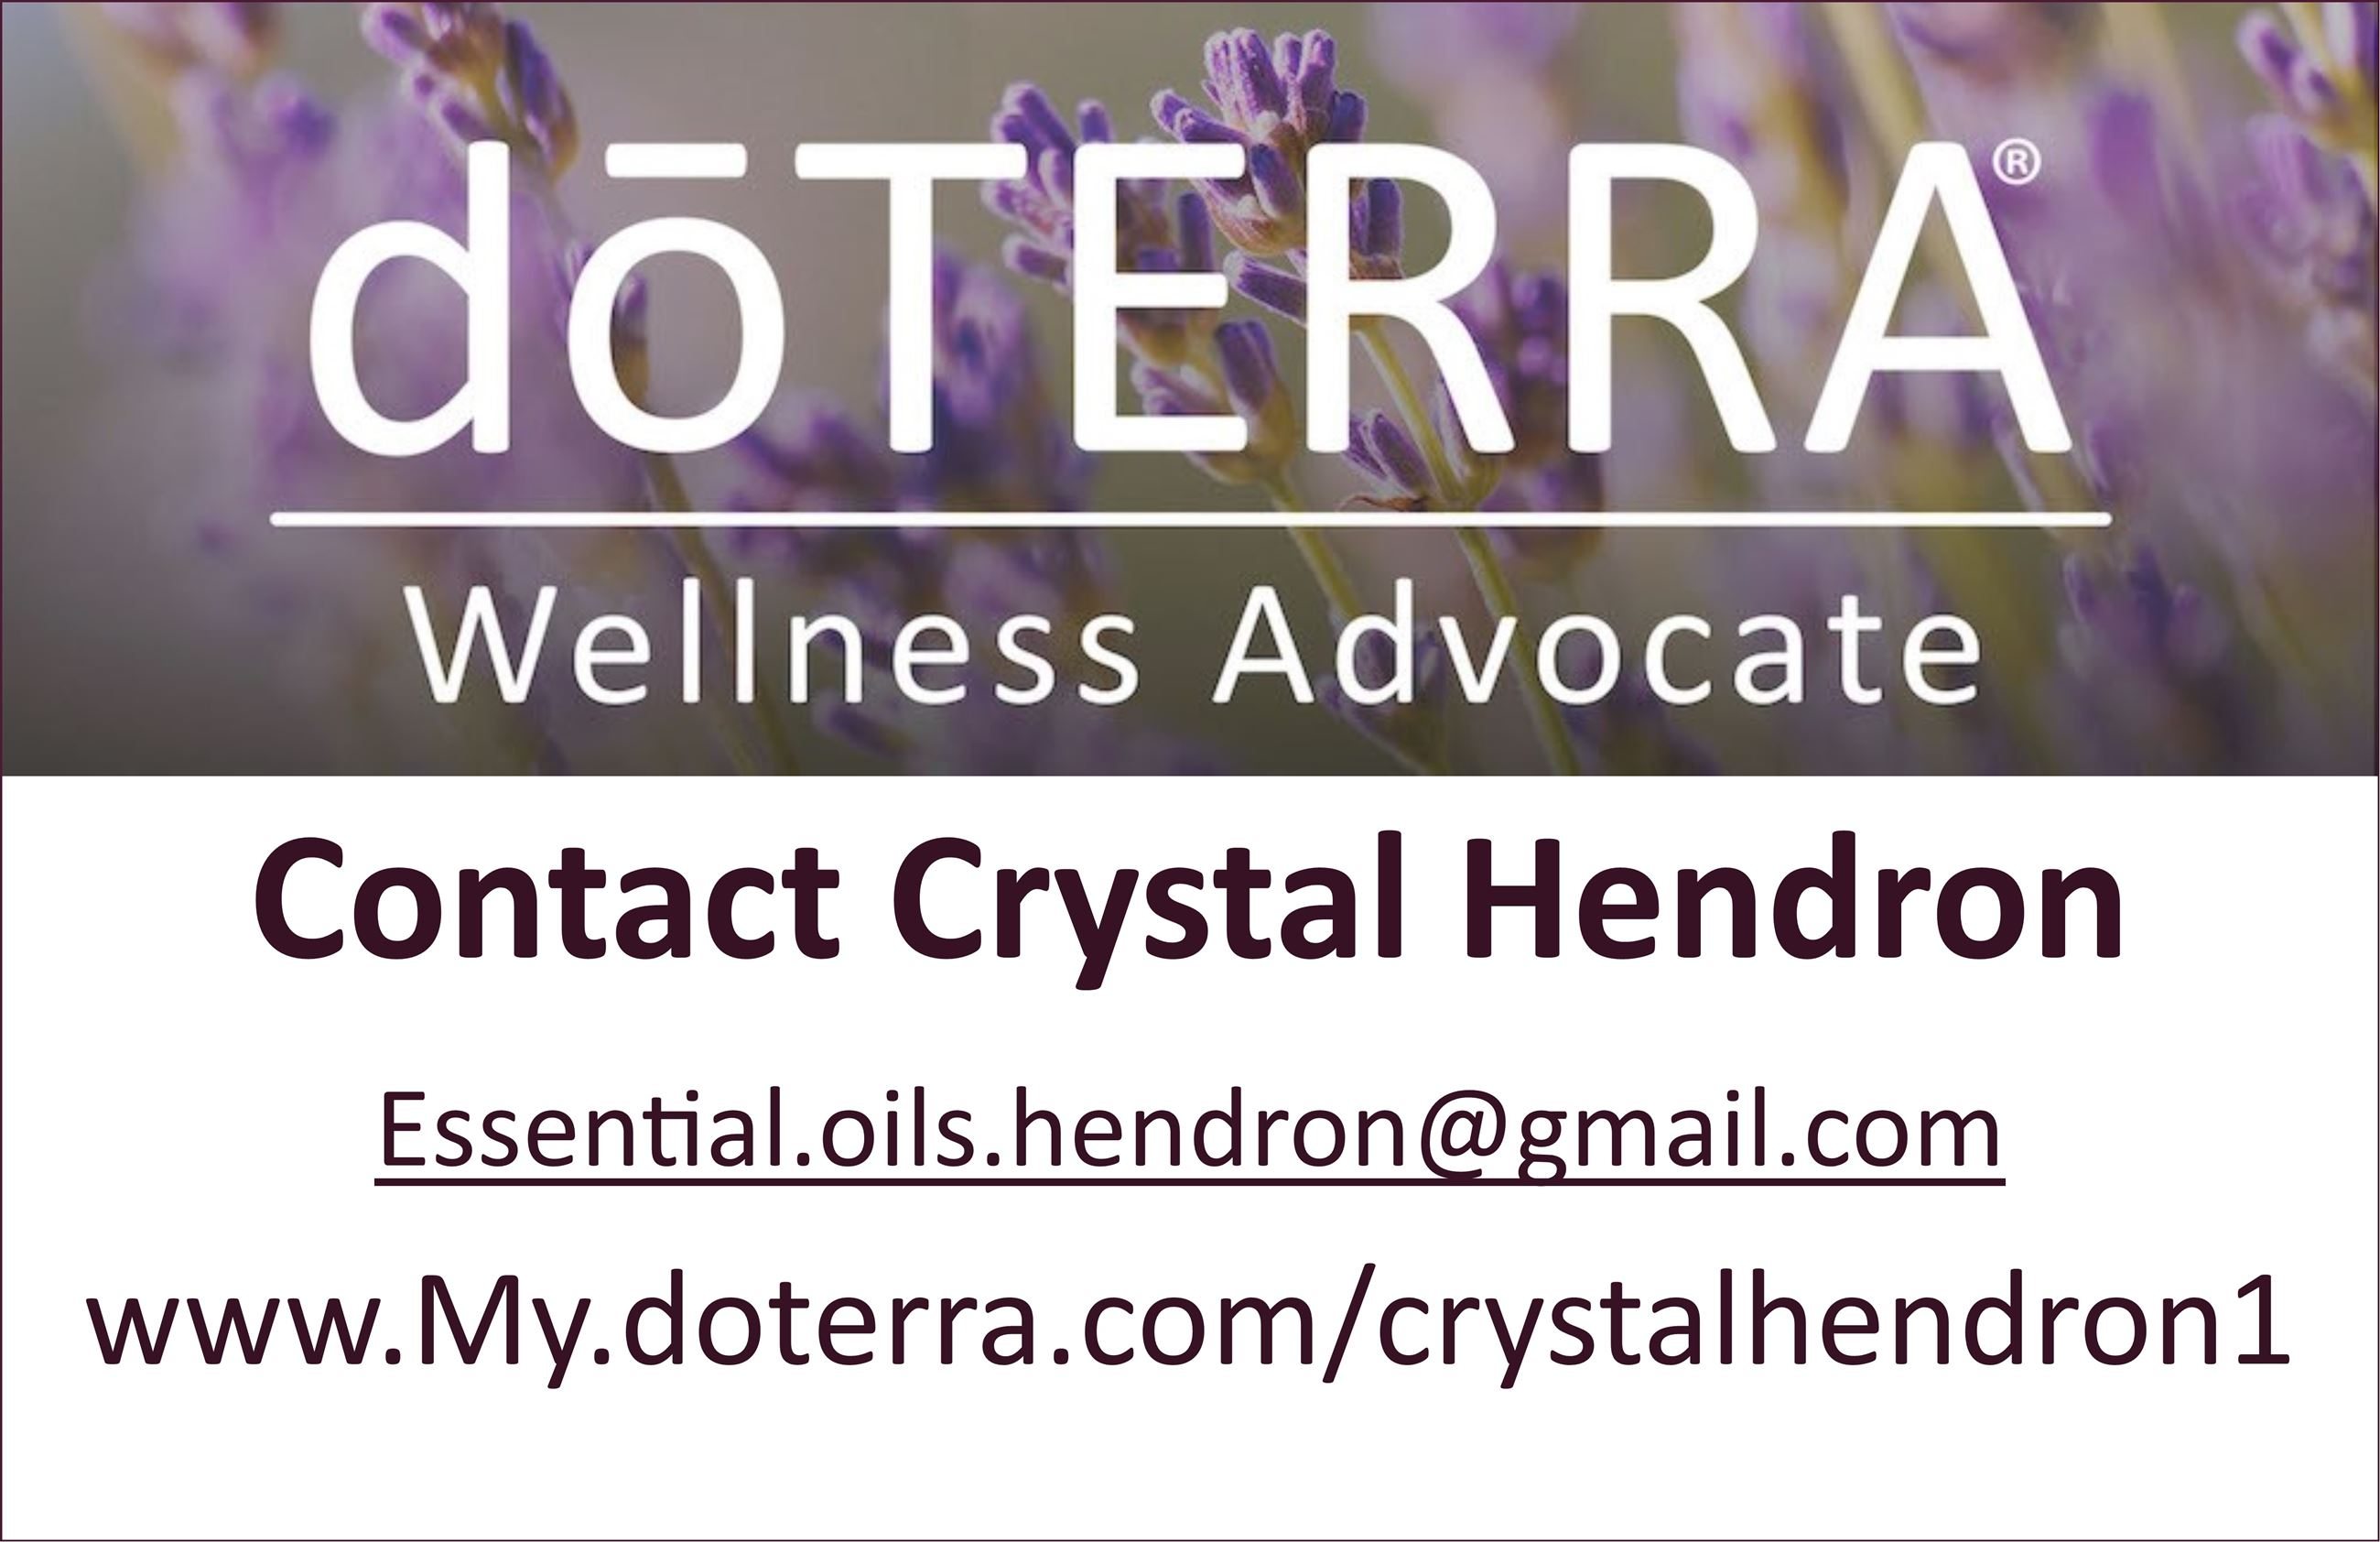 doTerra Wellness Advocate - Crystal Hendron